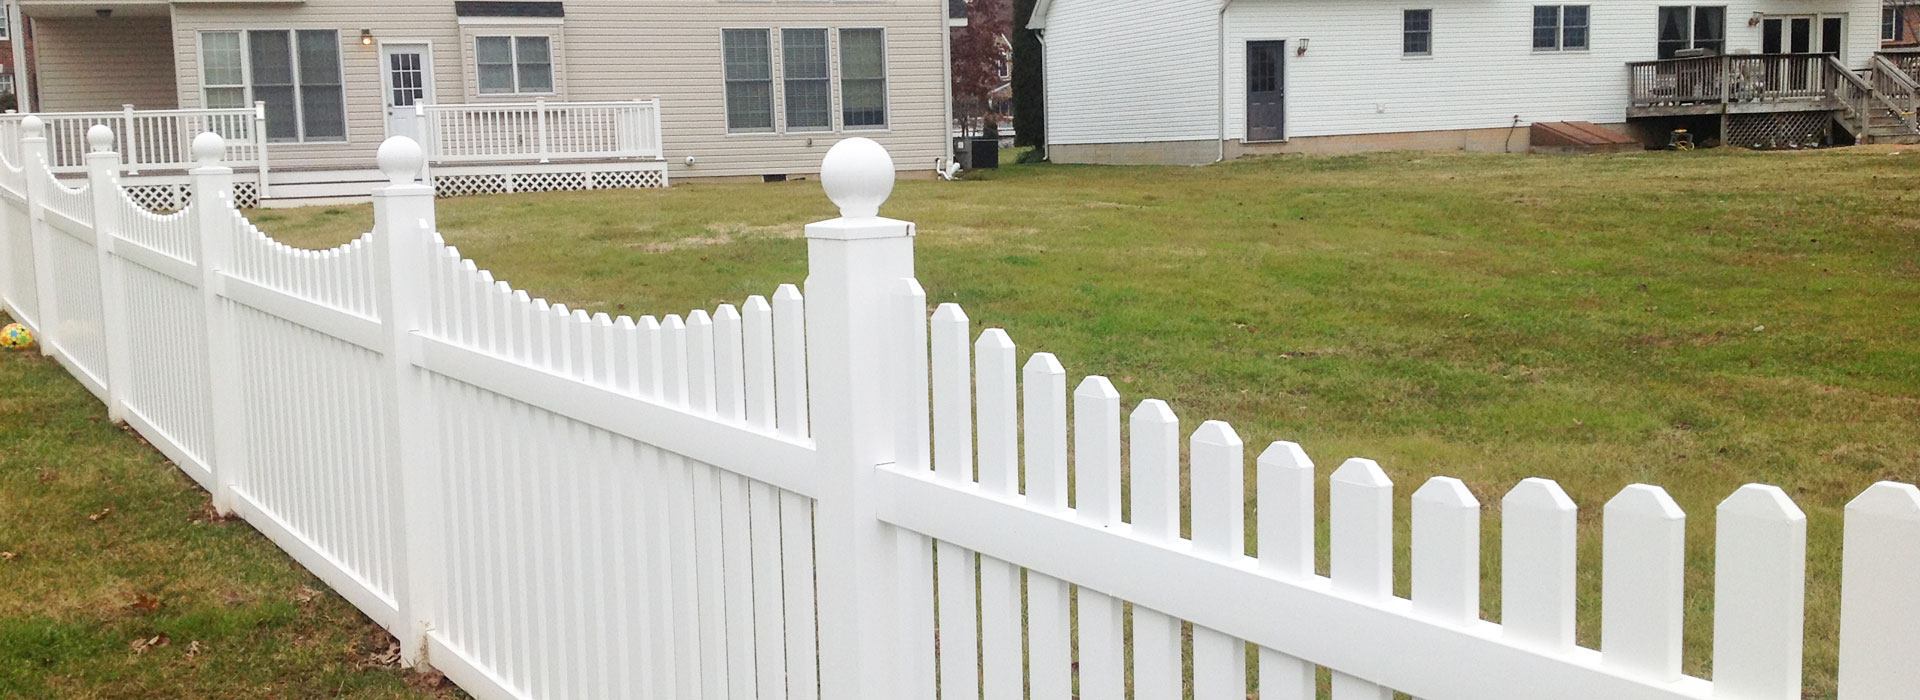 How To Care For Your Vinyl Fence Freedom Fence Amp Deck